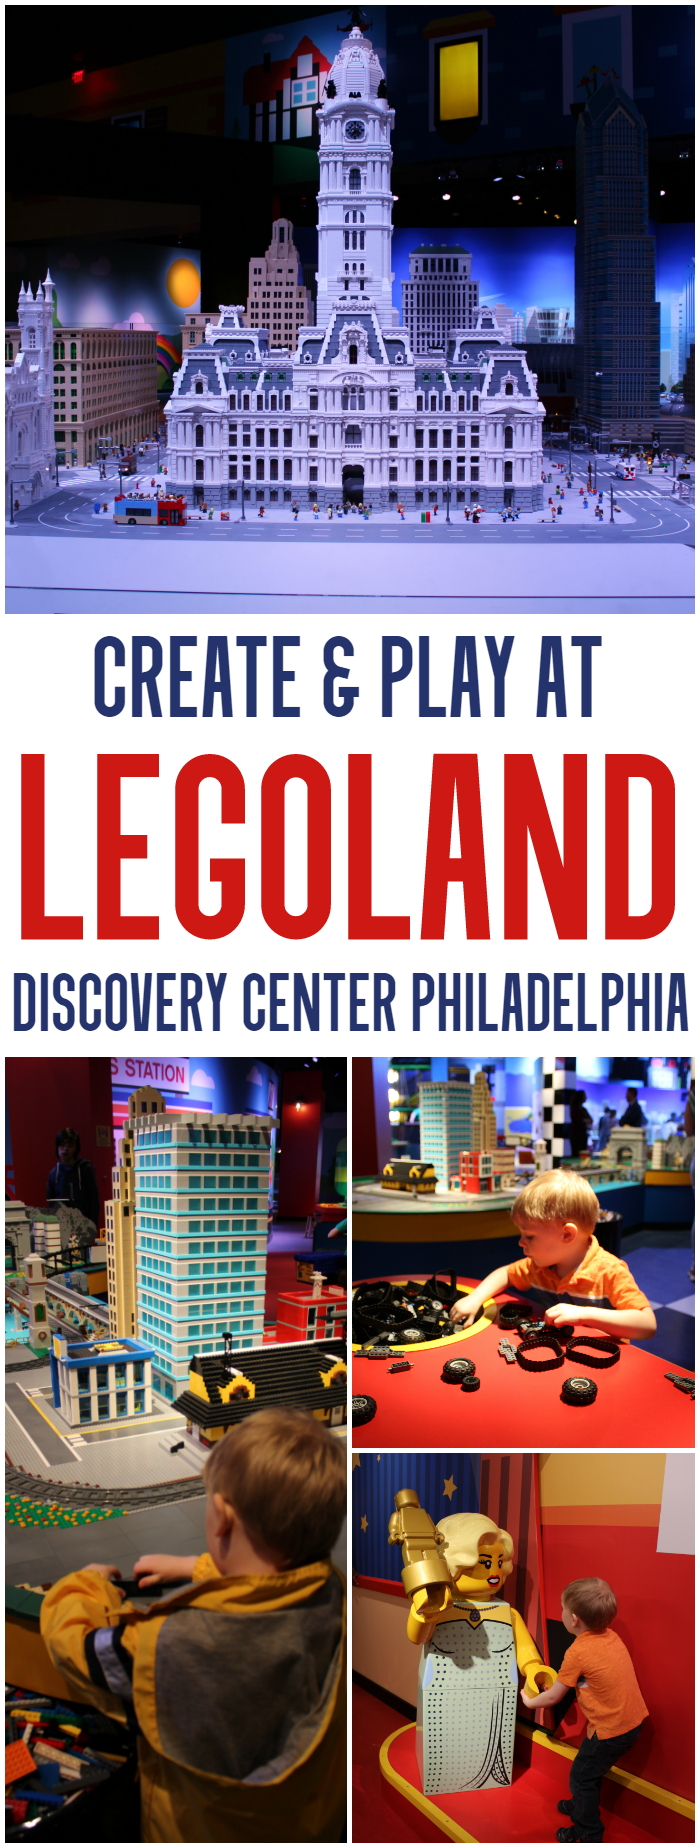 We got an early look at LEGOLAND Discovery Center Philadelphia! There is something for any age LEGO fan to enjoy here!